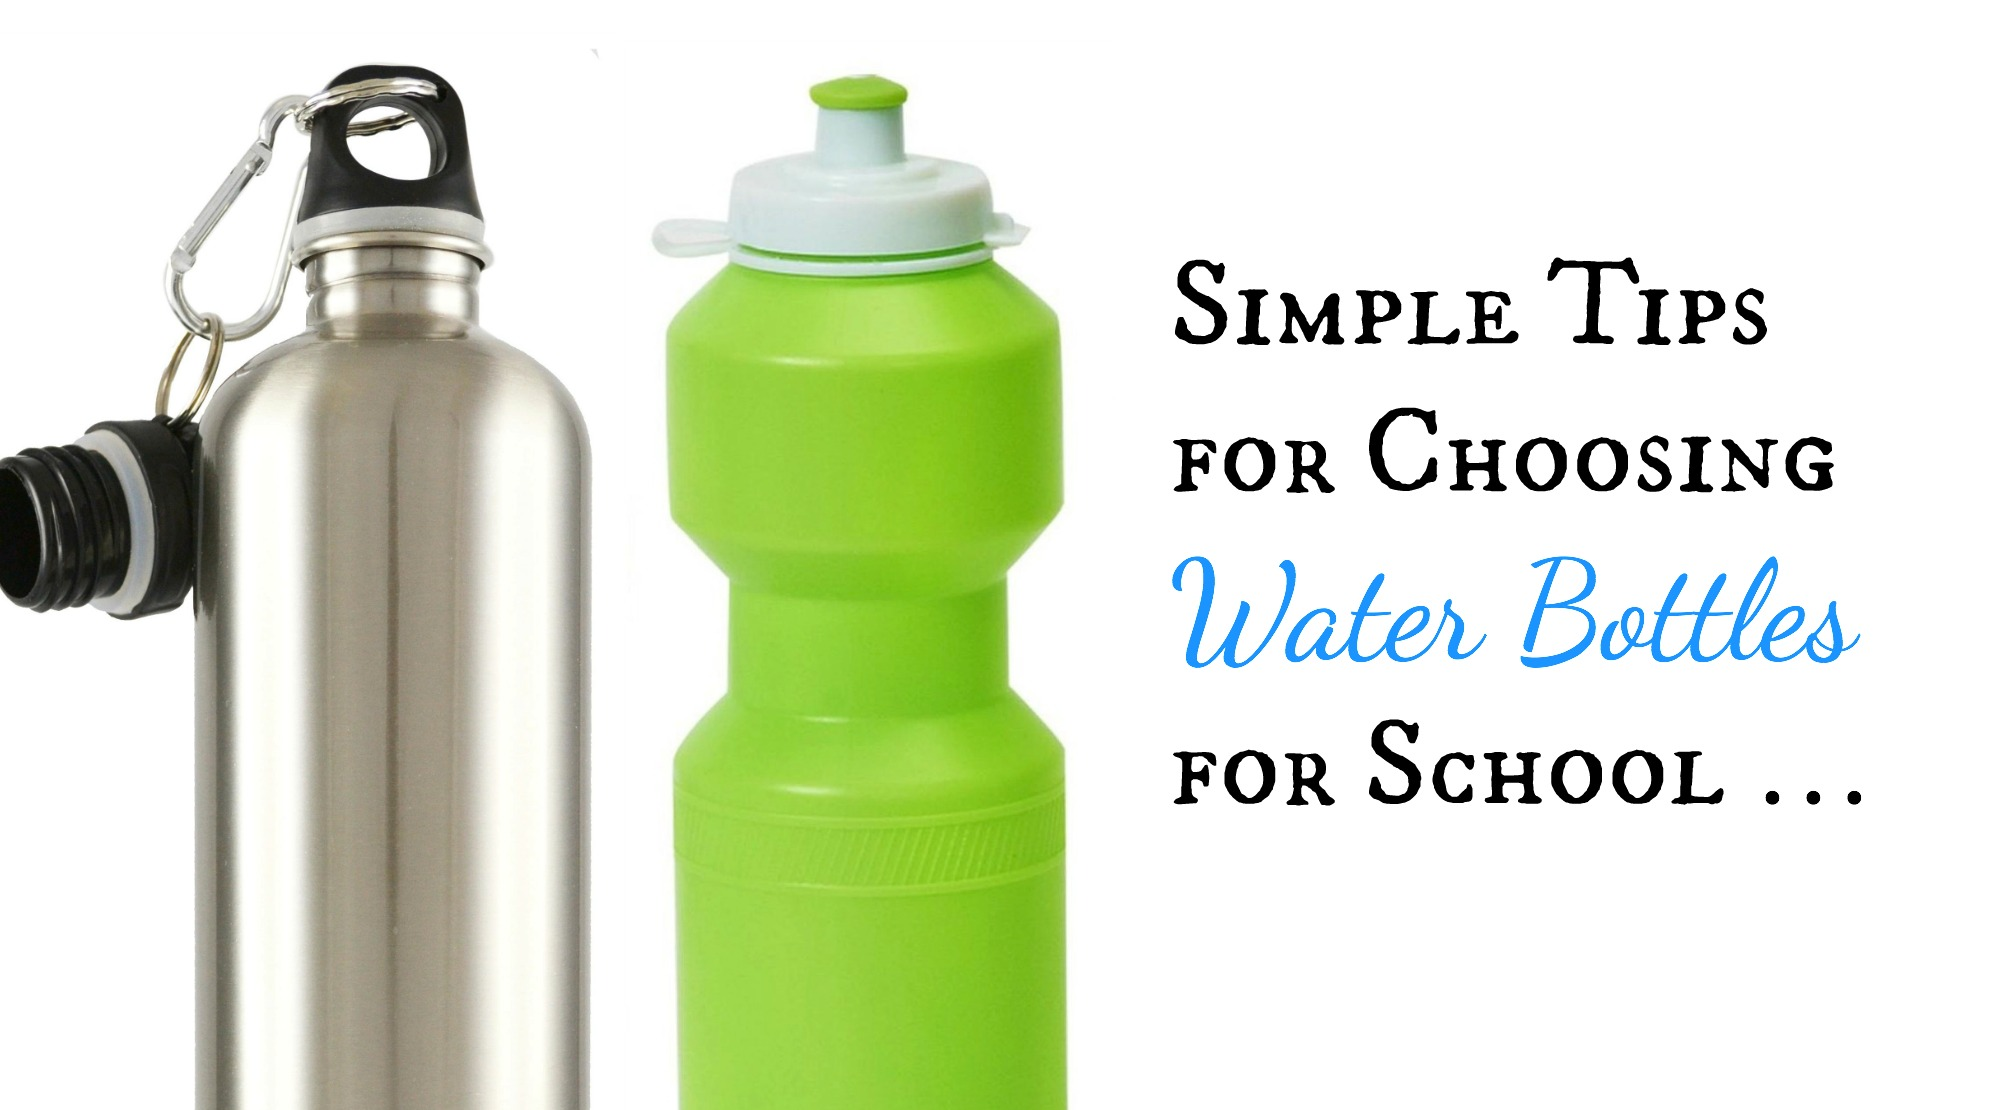 Simple Tips for Choosing Water Bottles for School …